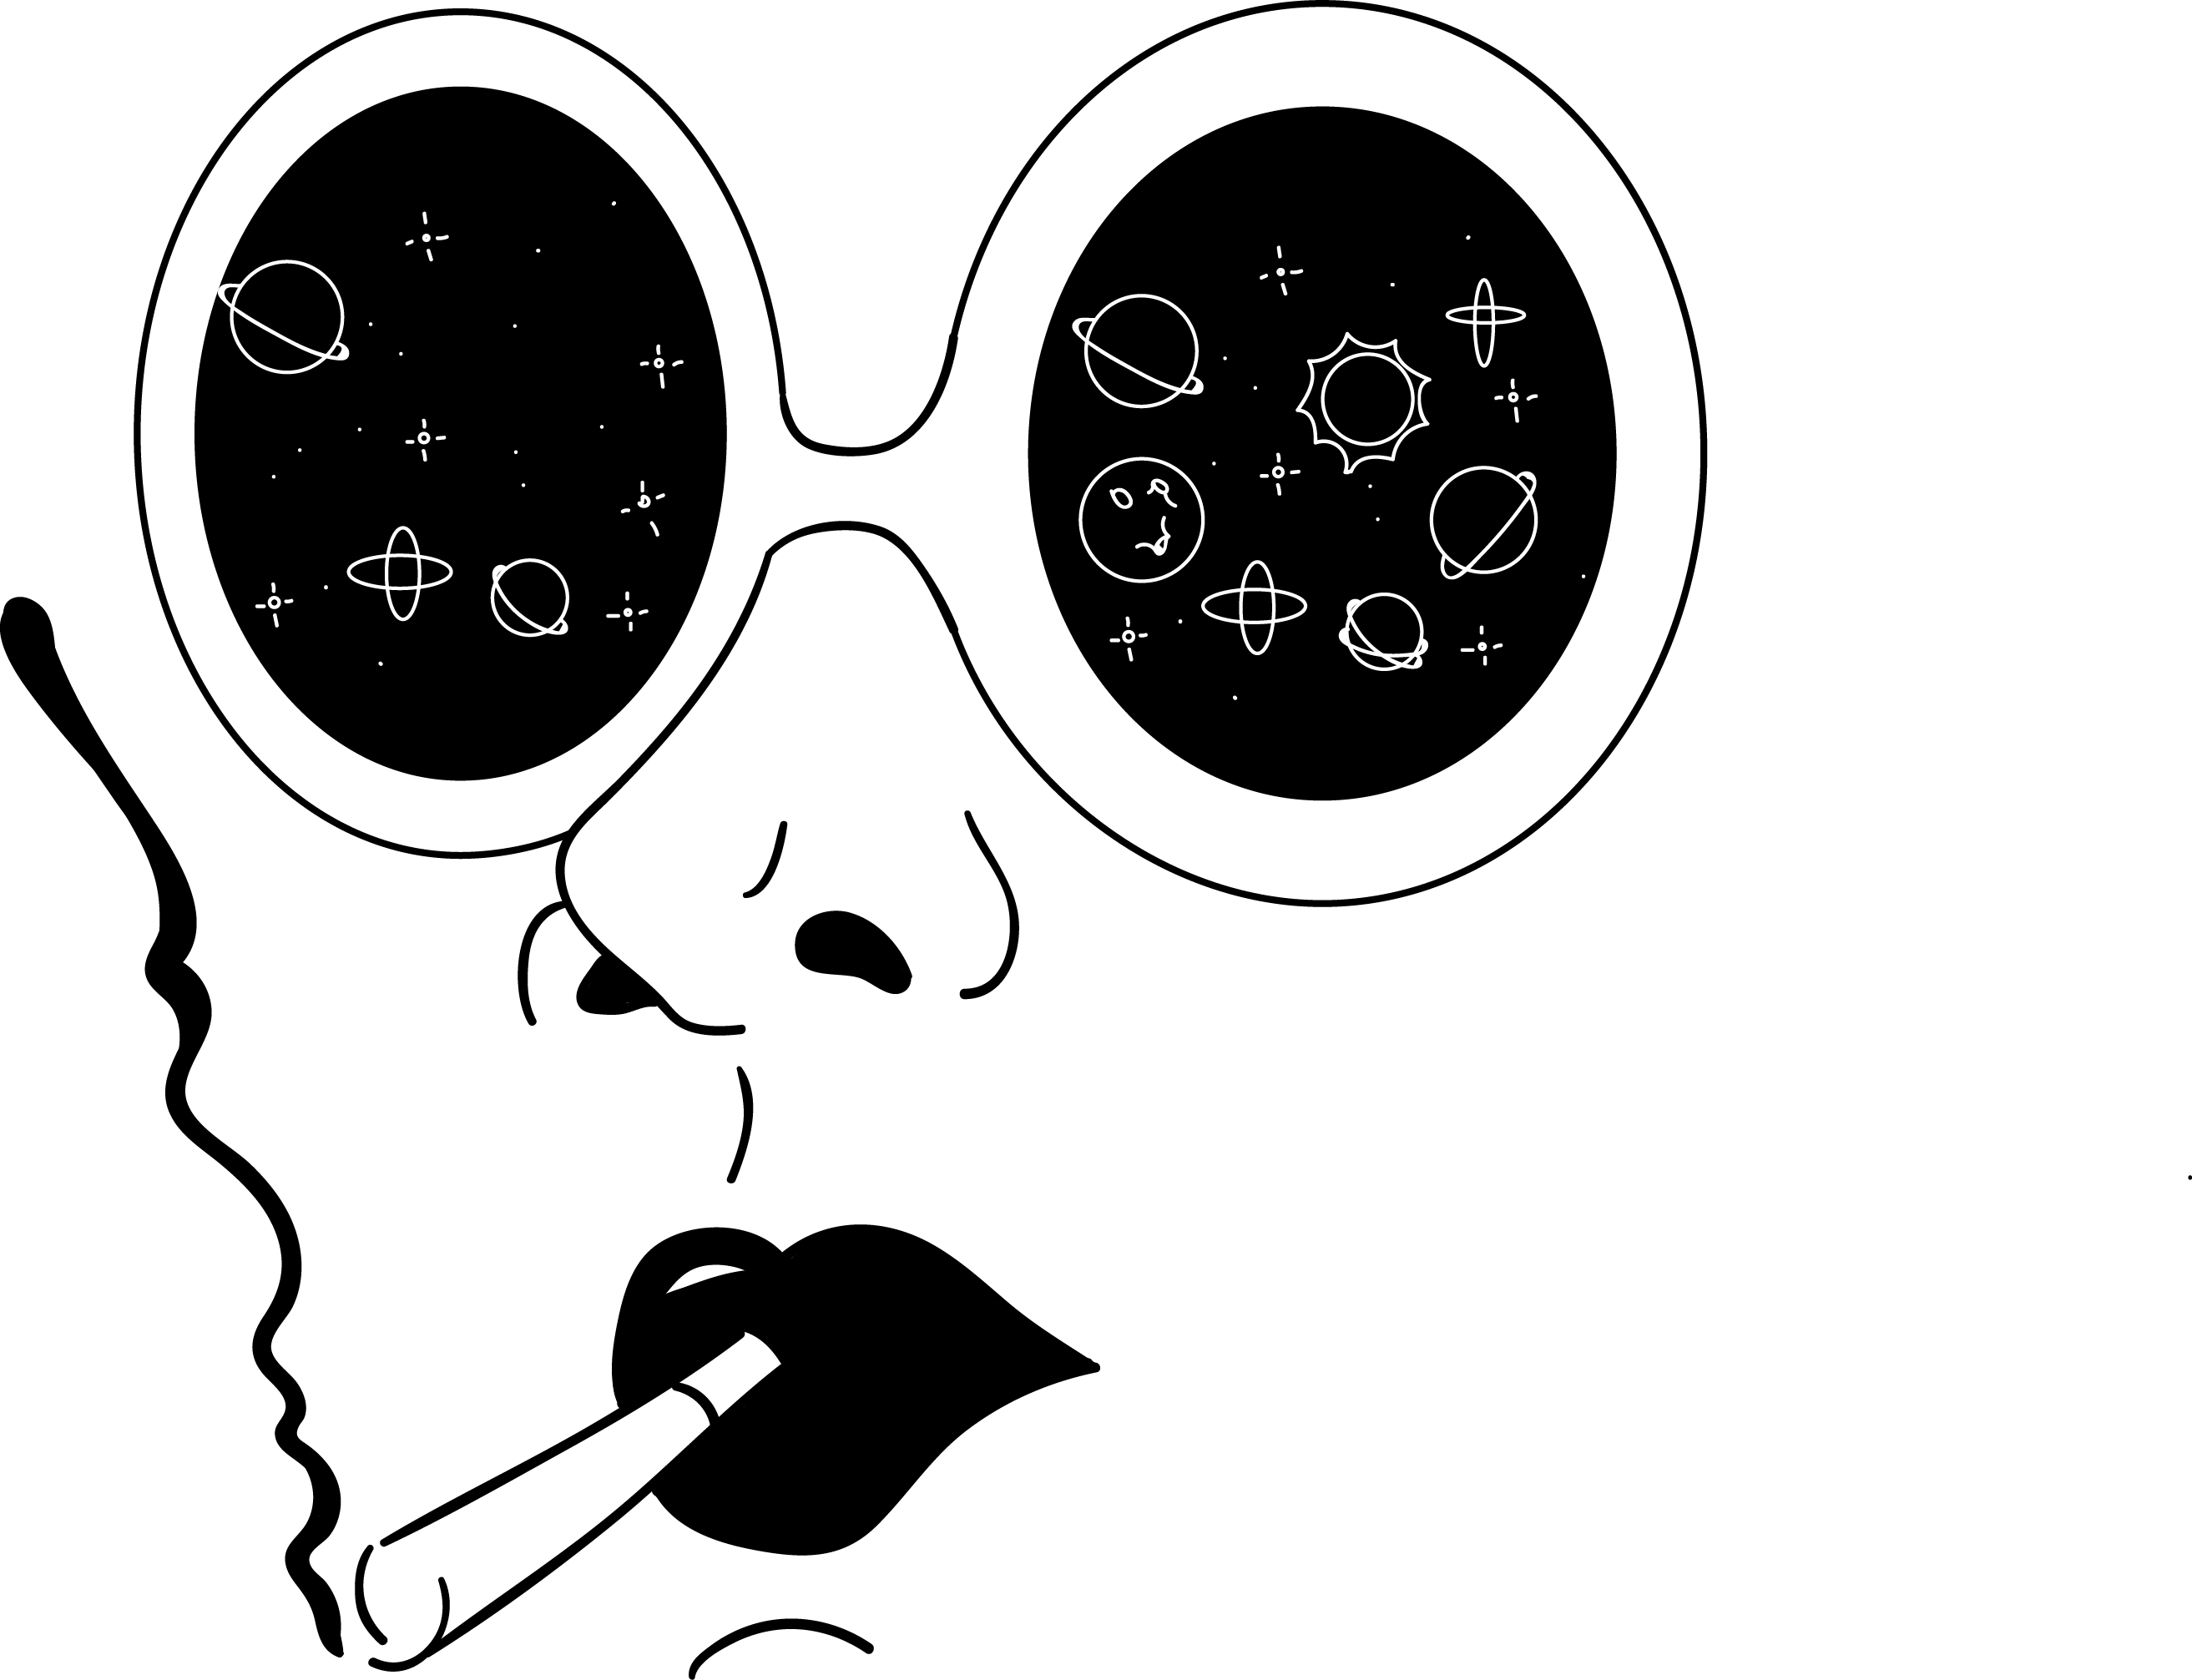 png library stock Graphic design graphicdesign art. Universe vector sketch